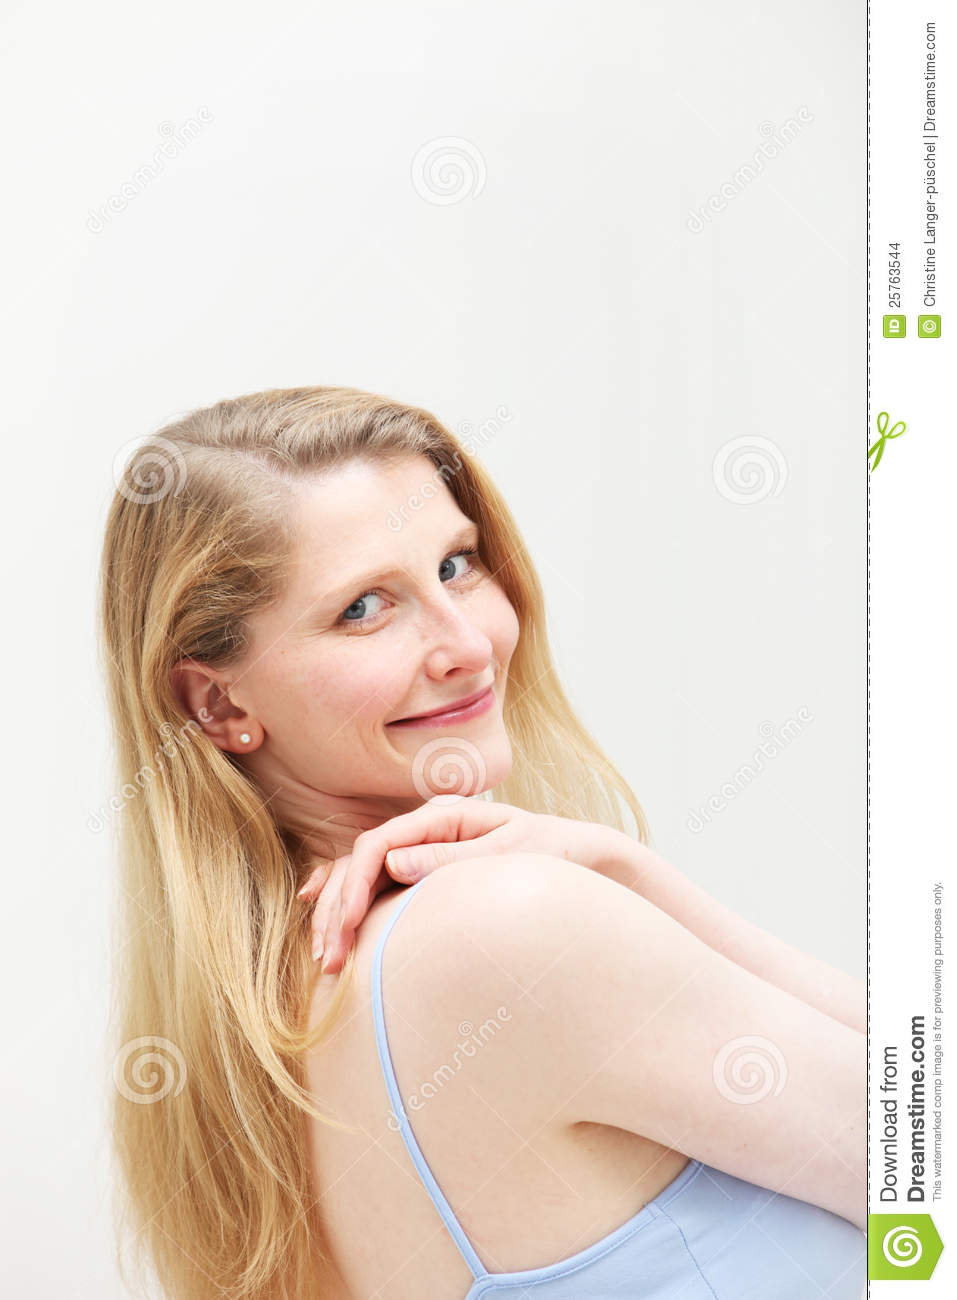 Smiling Blonde Woman Looking Over Her Shoulder Stock